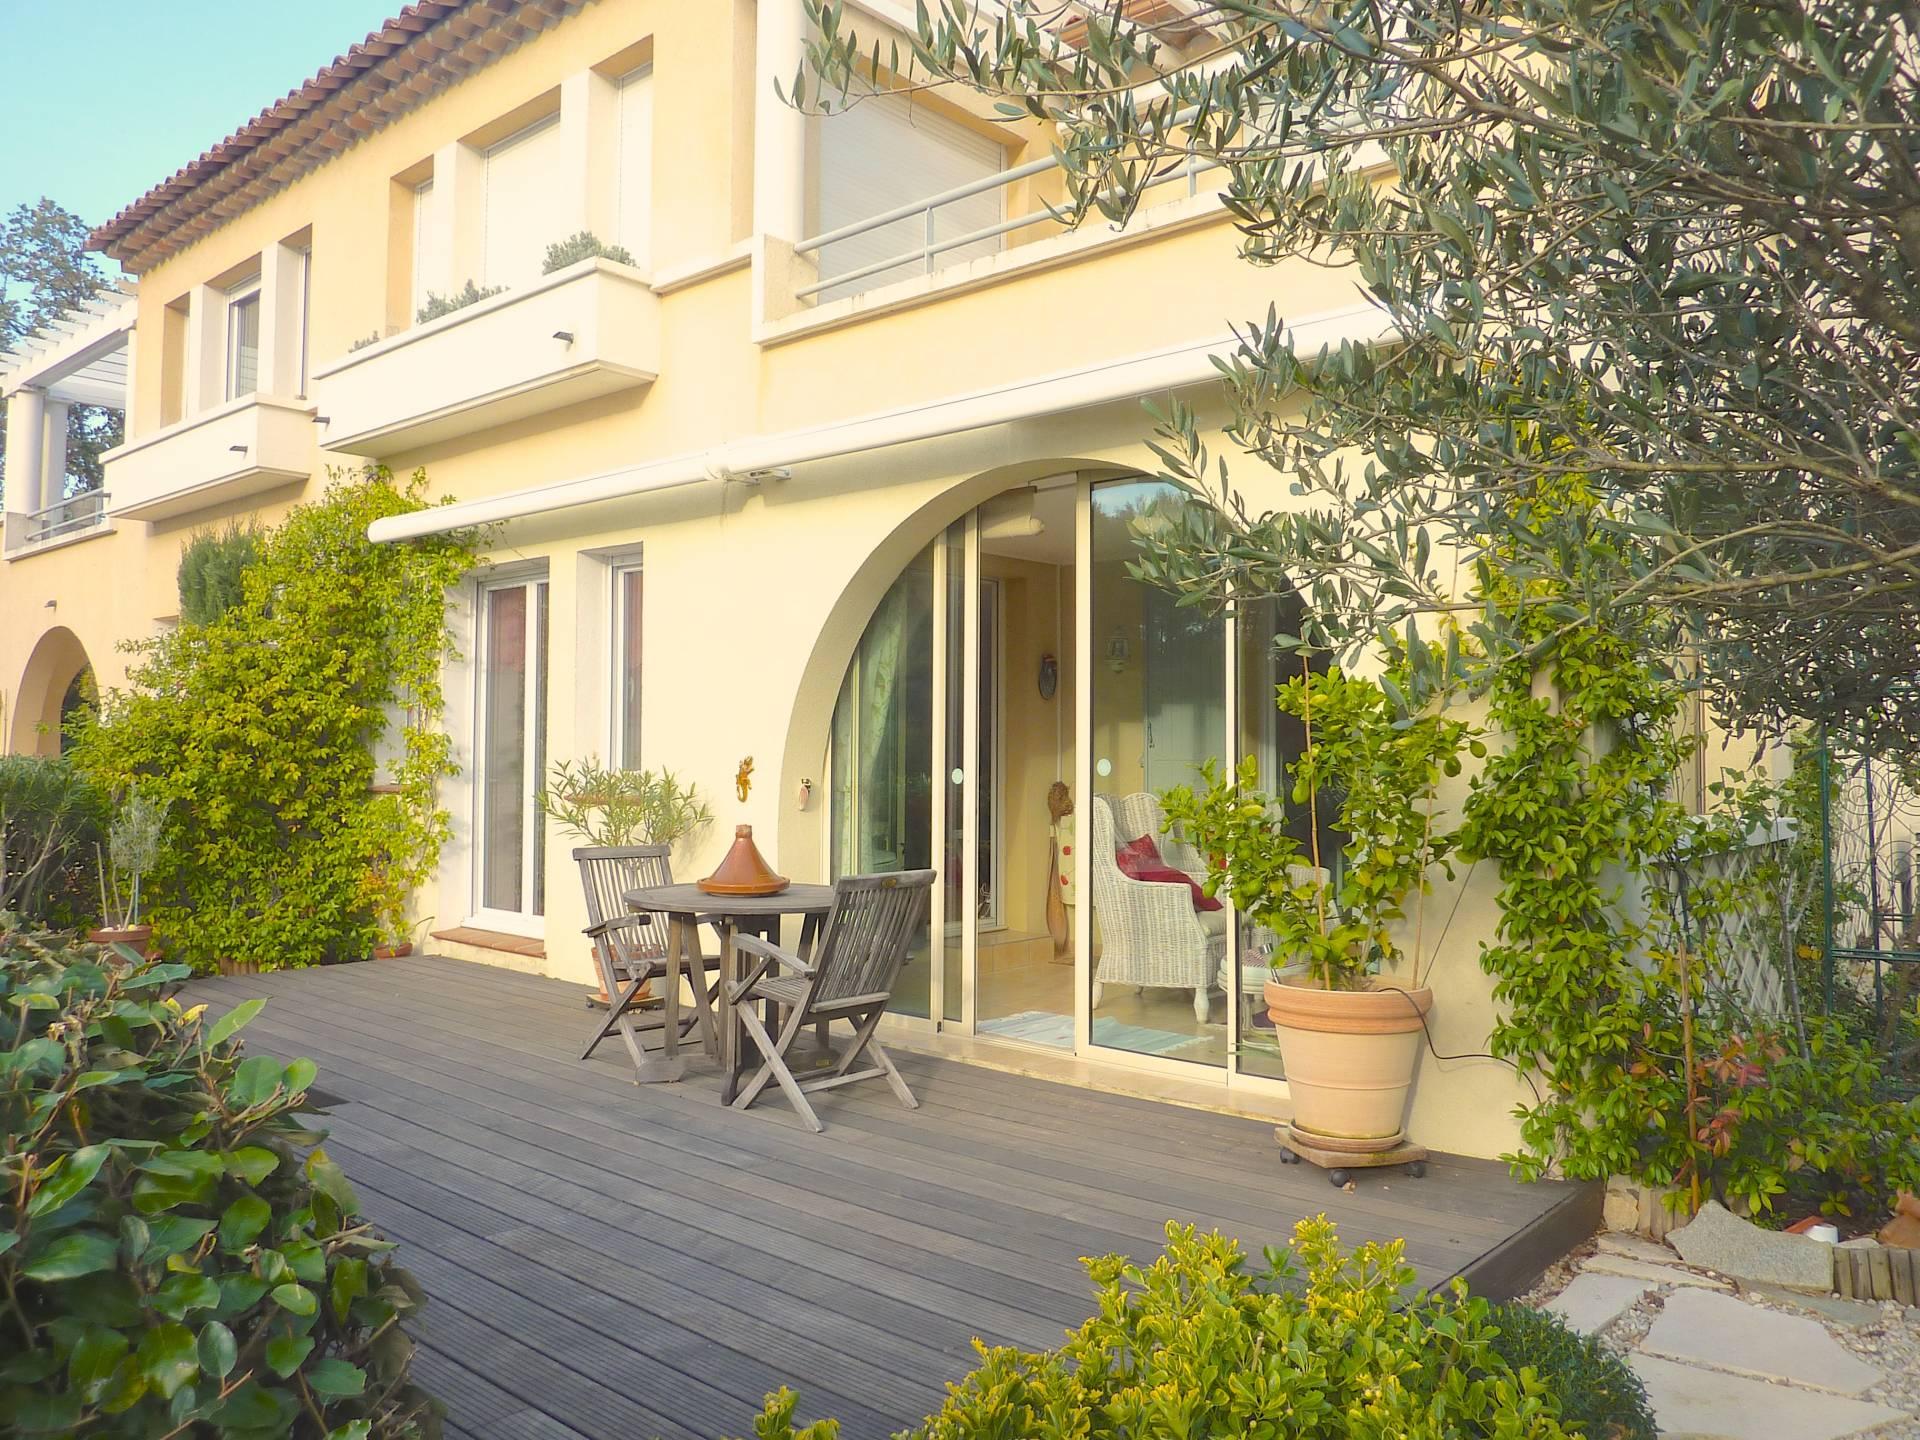 EXCLUSIVELLY Quality apartment with garden and pool in Lorgues